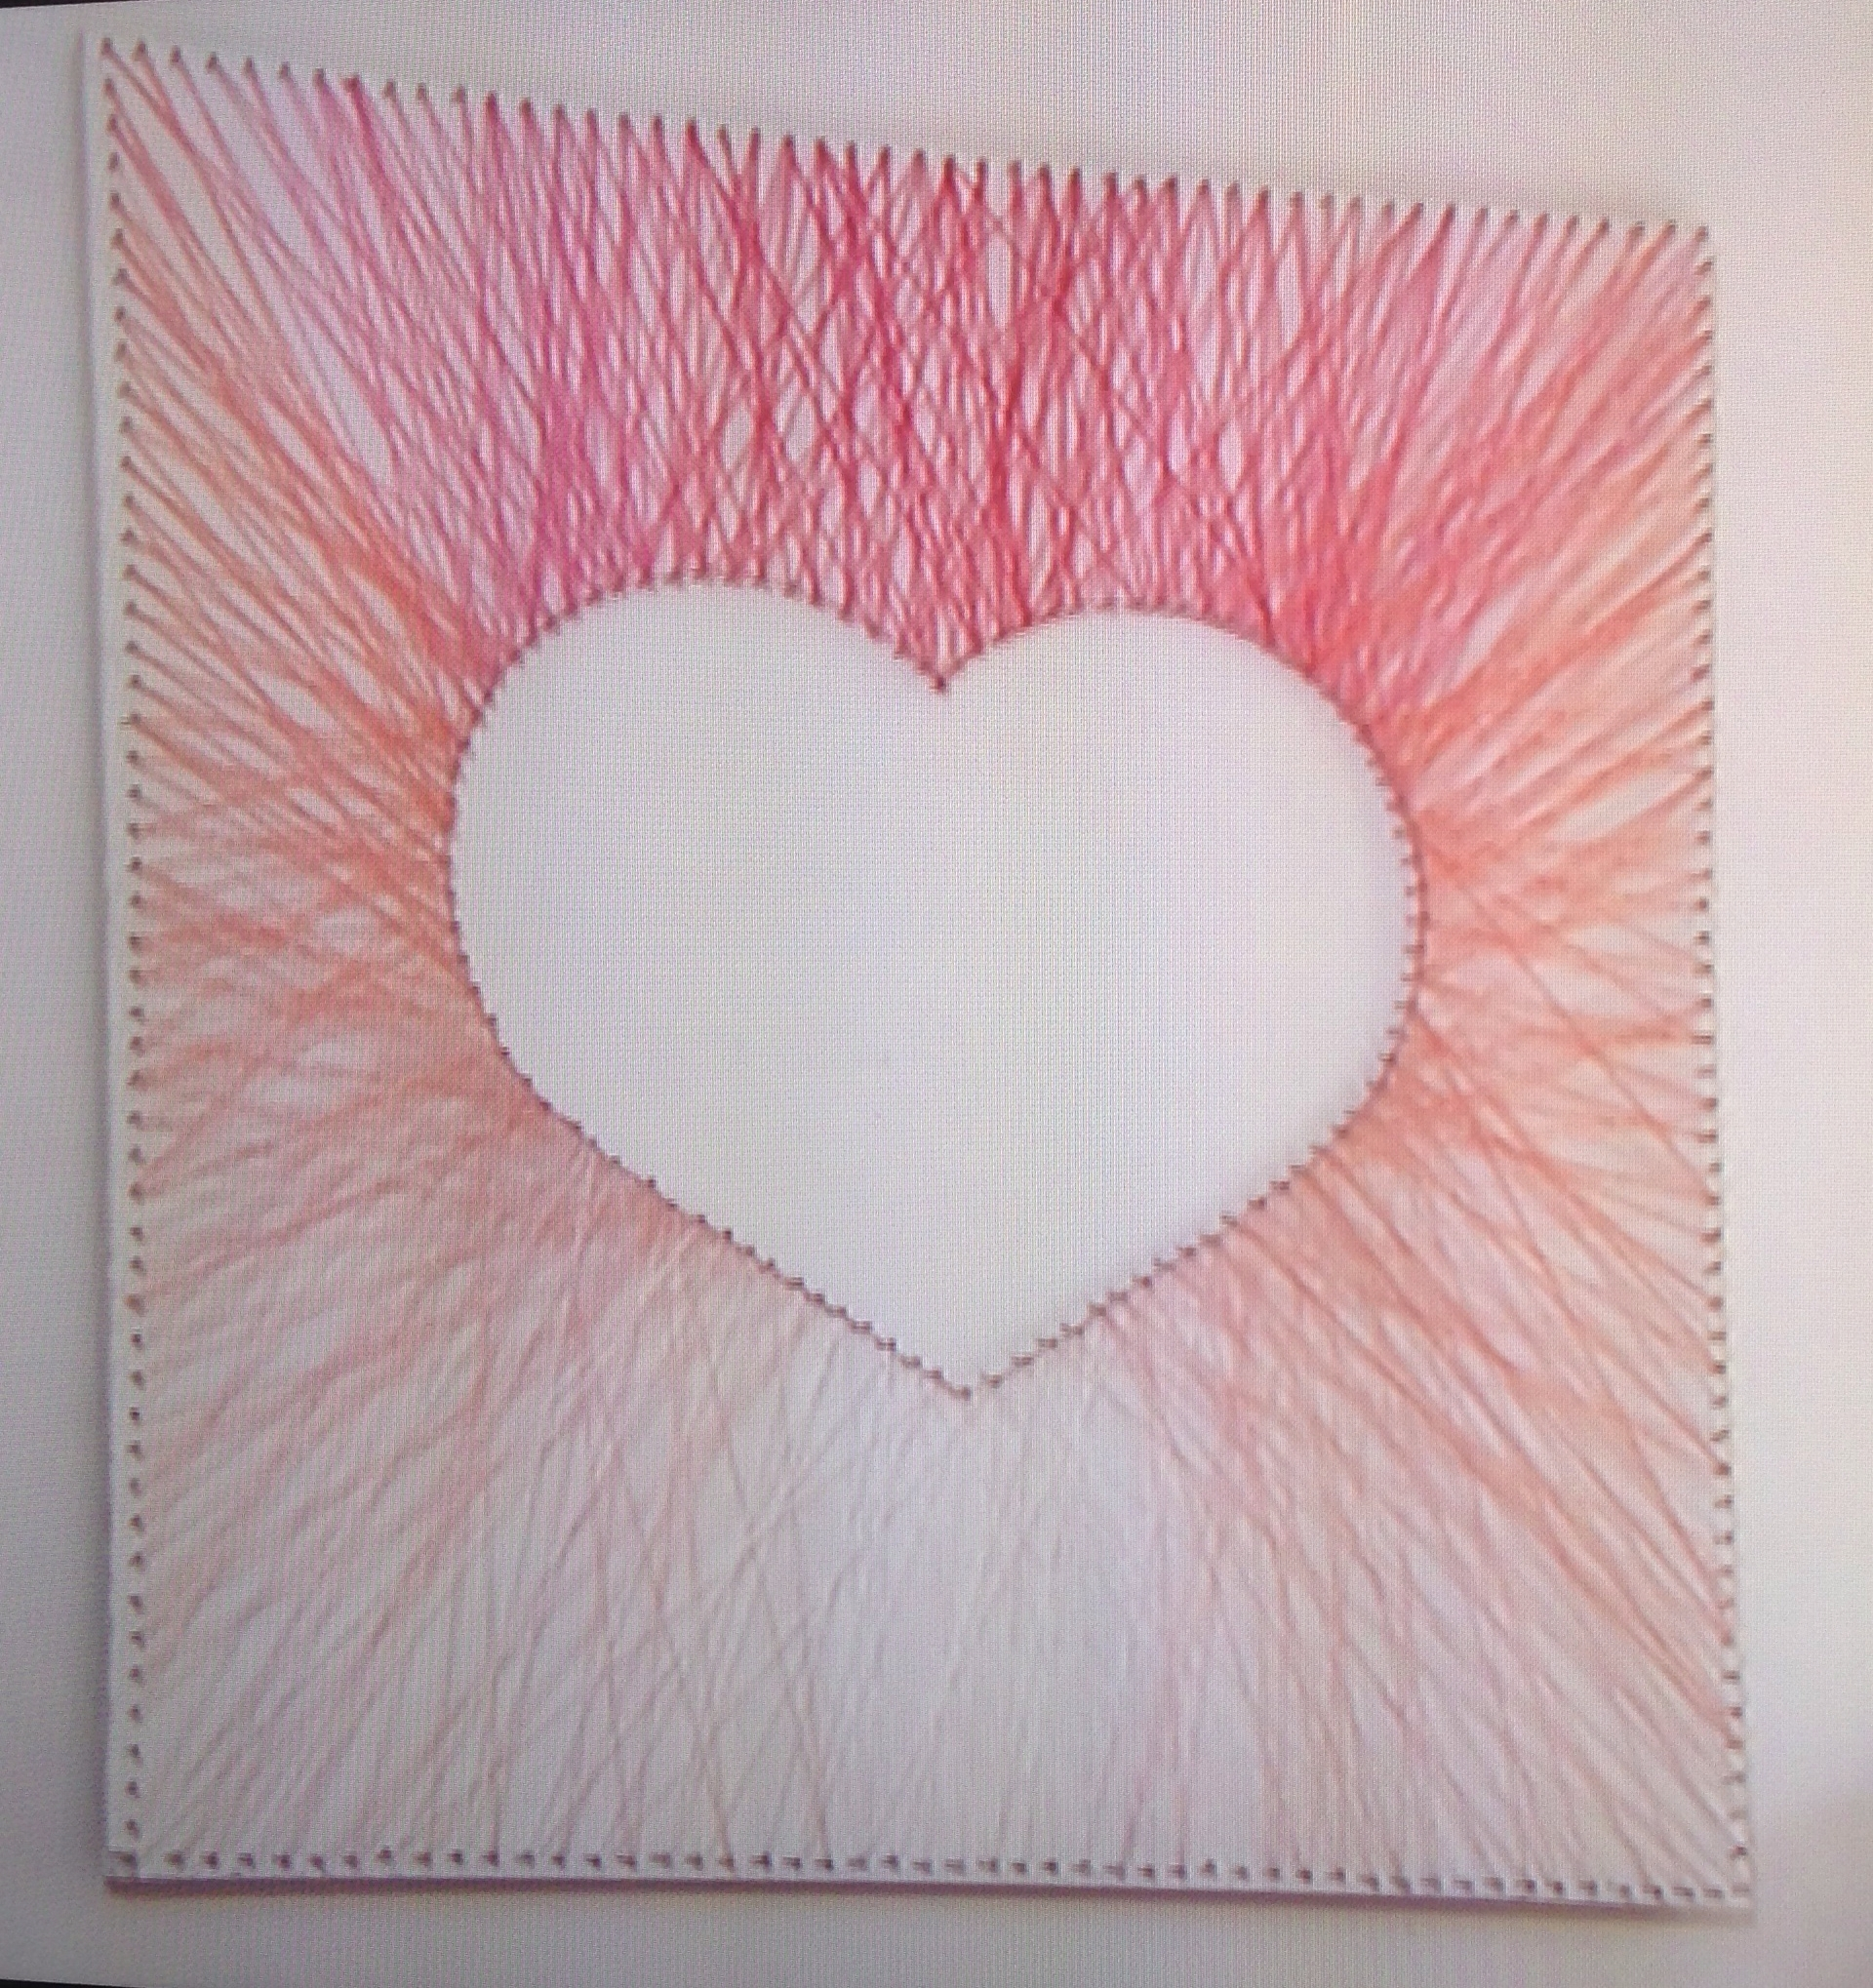 Nail And Yarn Wall Art Within Most Recent Pink Heart Wall Art Made From Nails And Wool! Kirstie's Fill Your (Gallery 11 of 15)